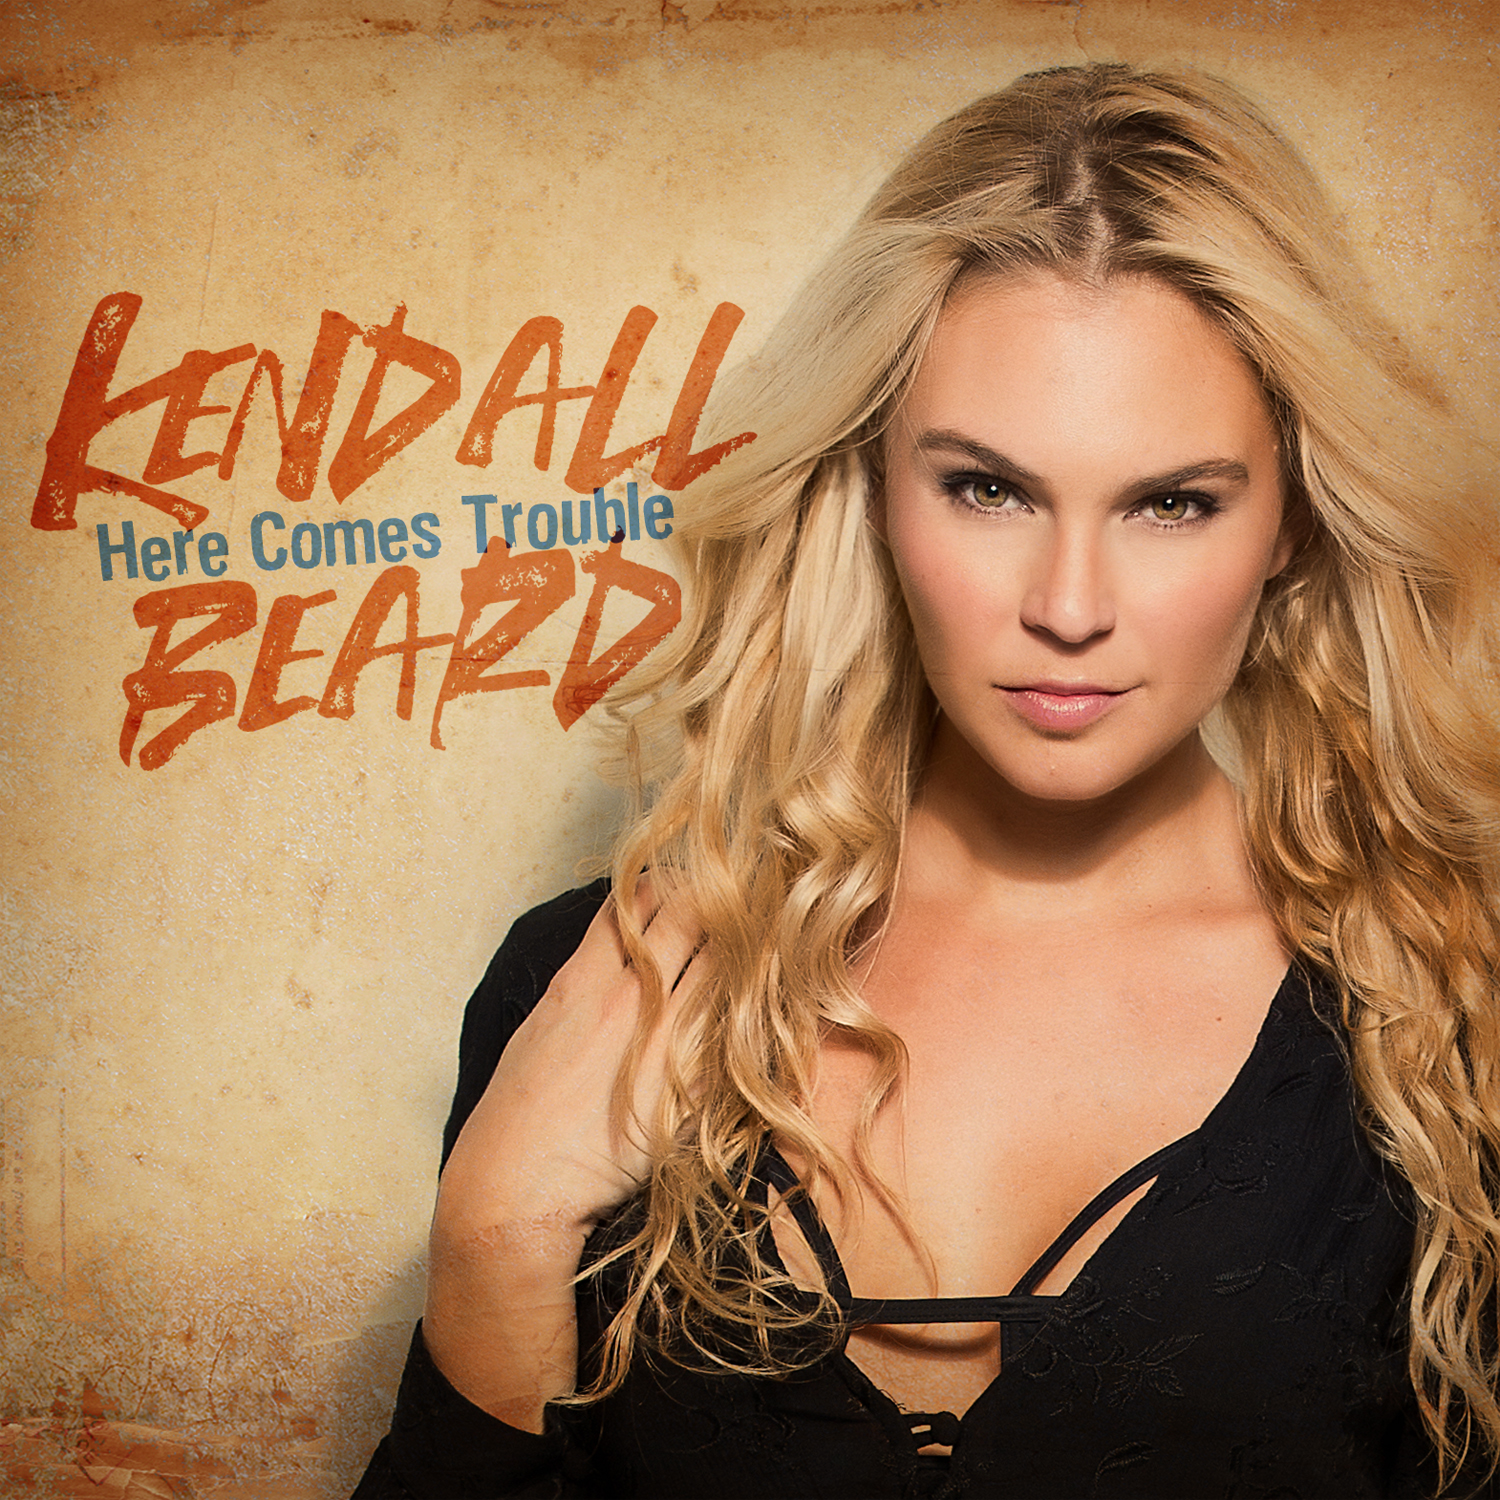 Kendal Cover-square